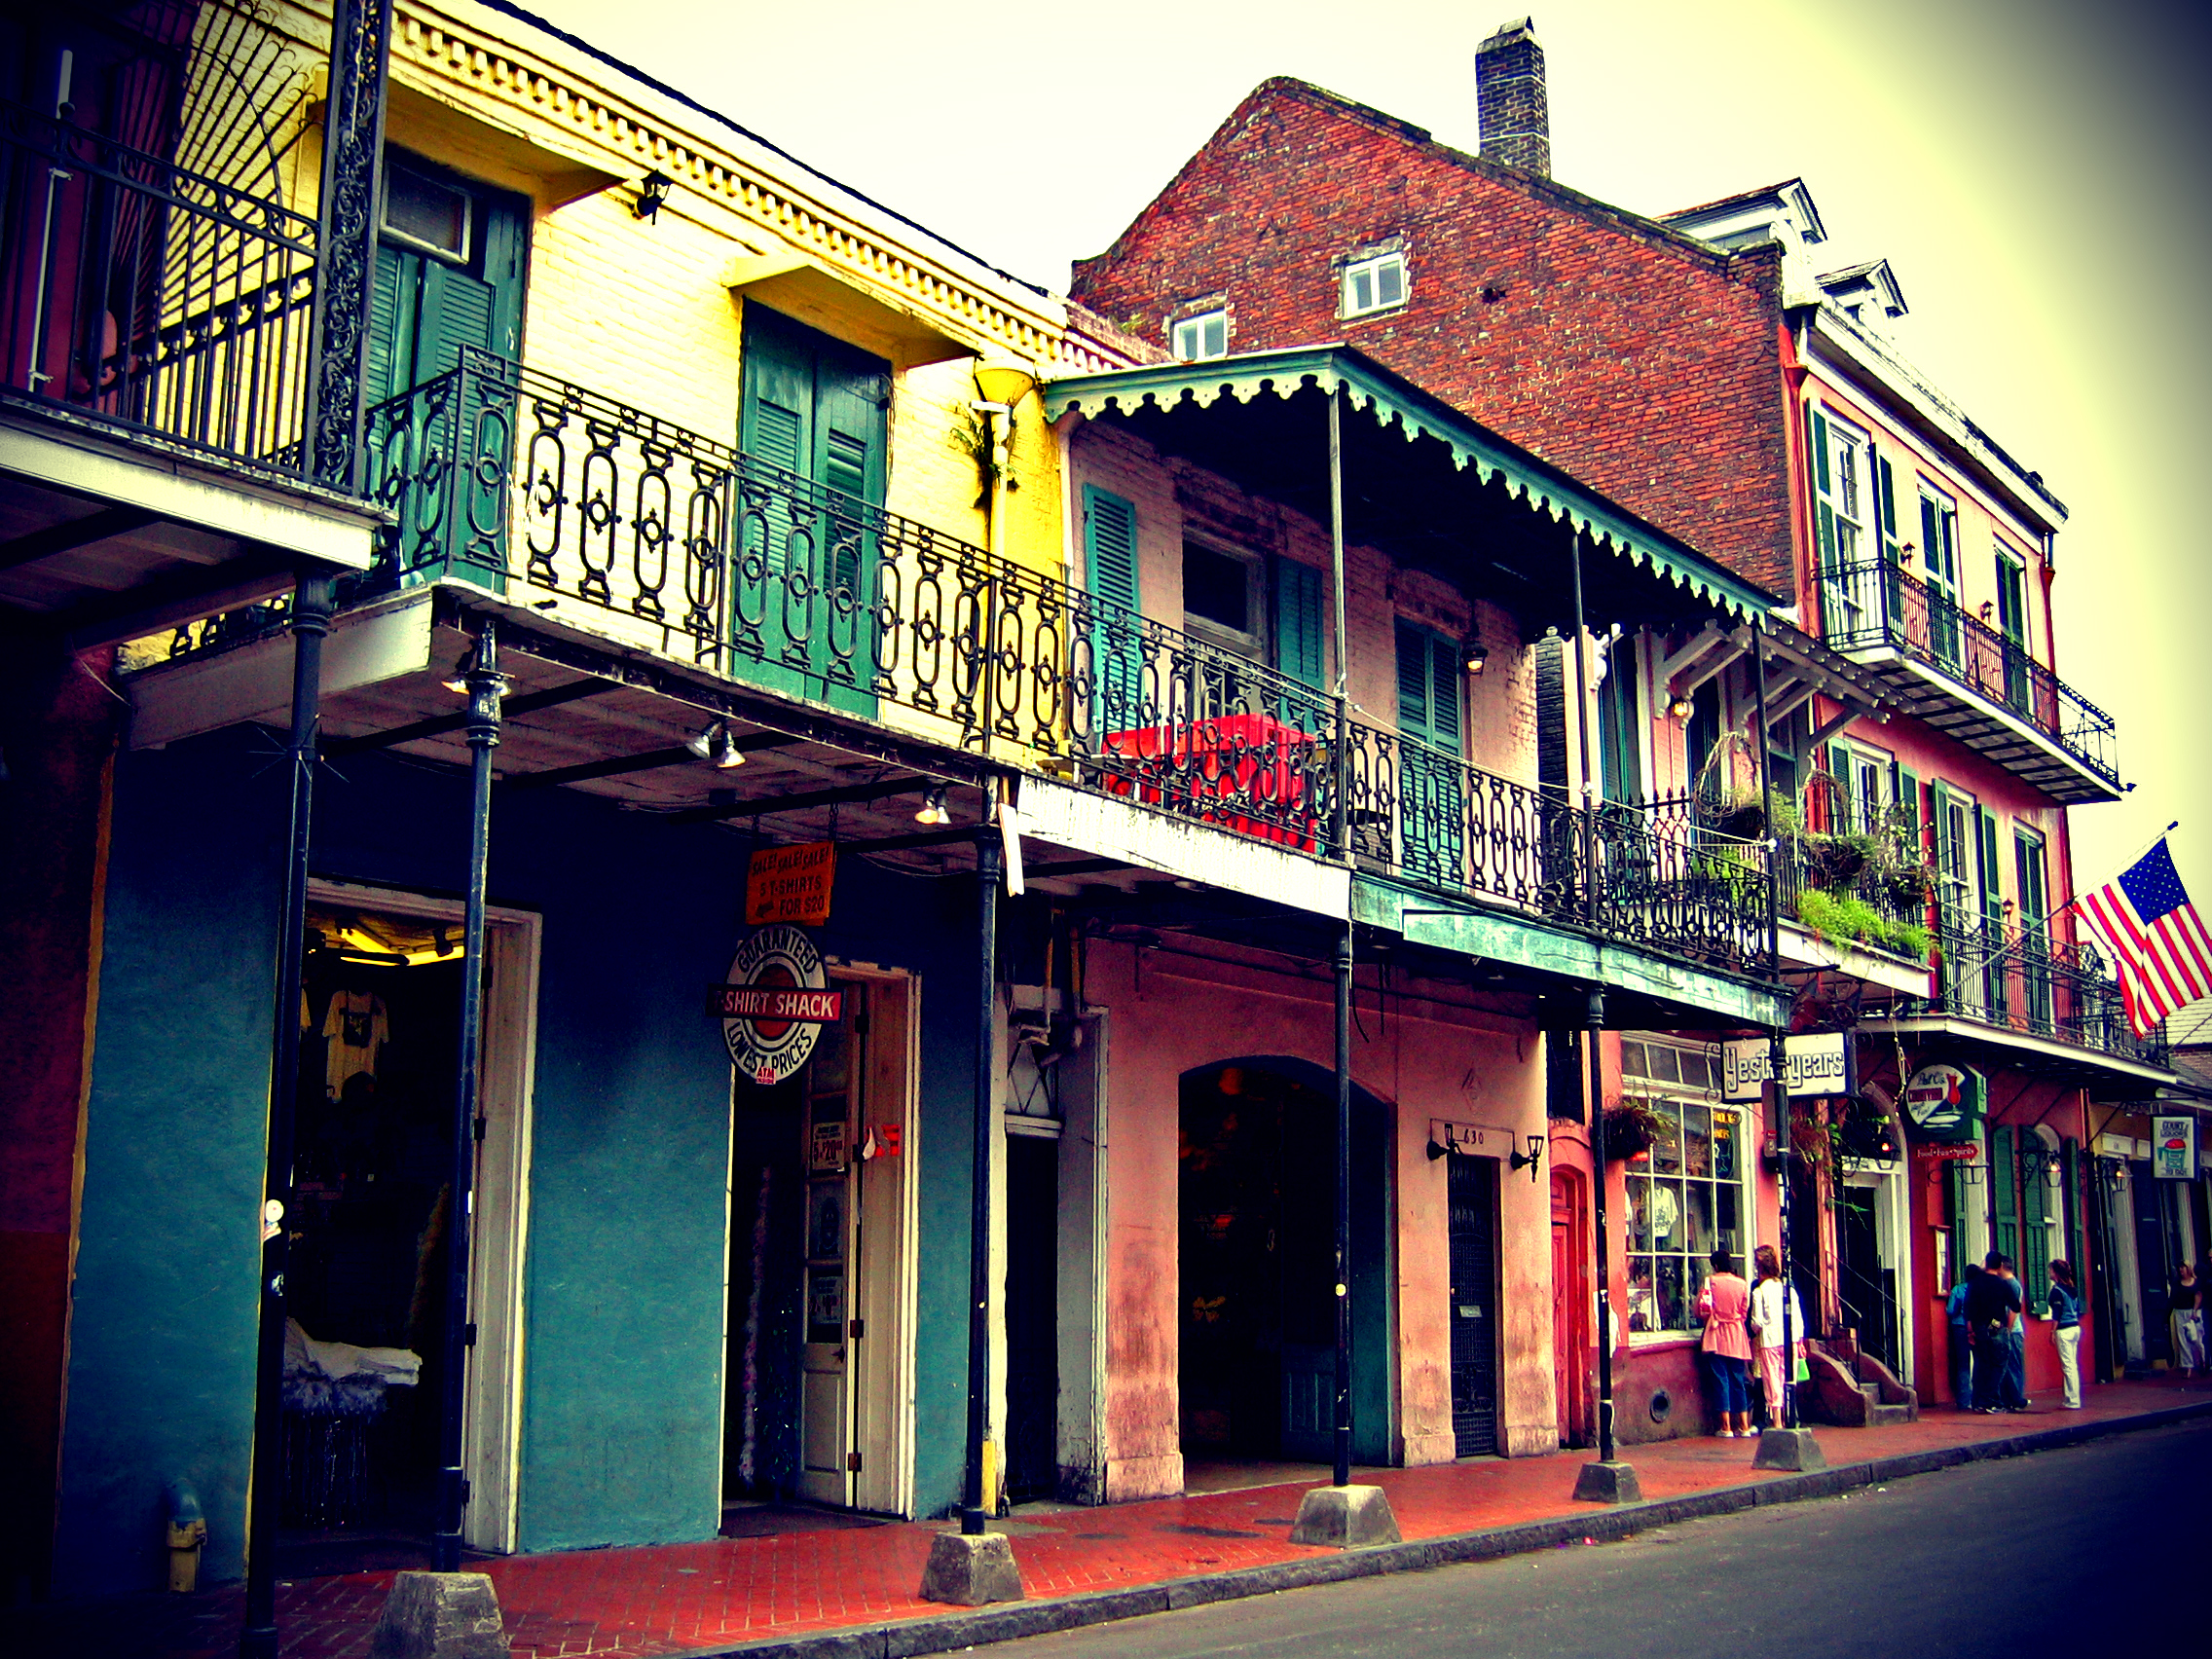 French Quarter New Orleans HD Wallpaper Background Images 2272x1704